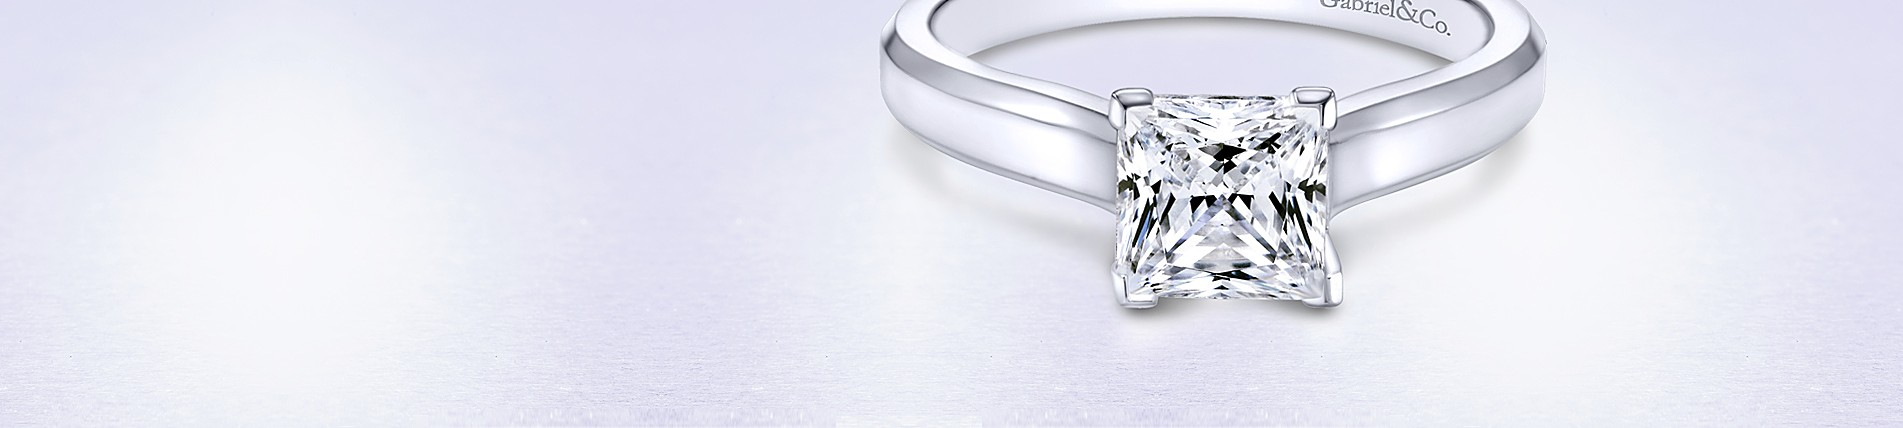 solitaire ring product wedding jewelry engagement rings petal designs